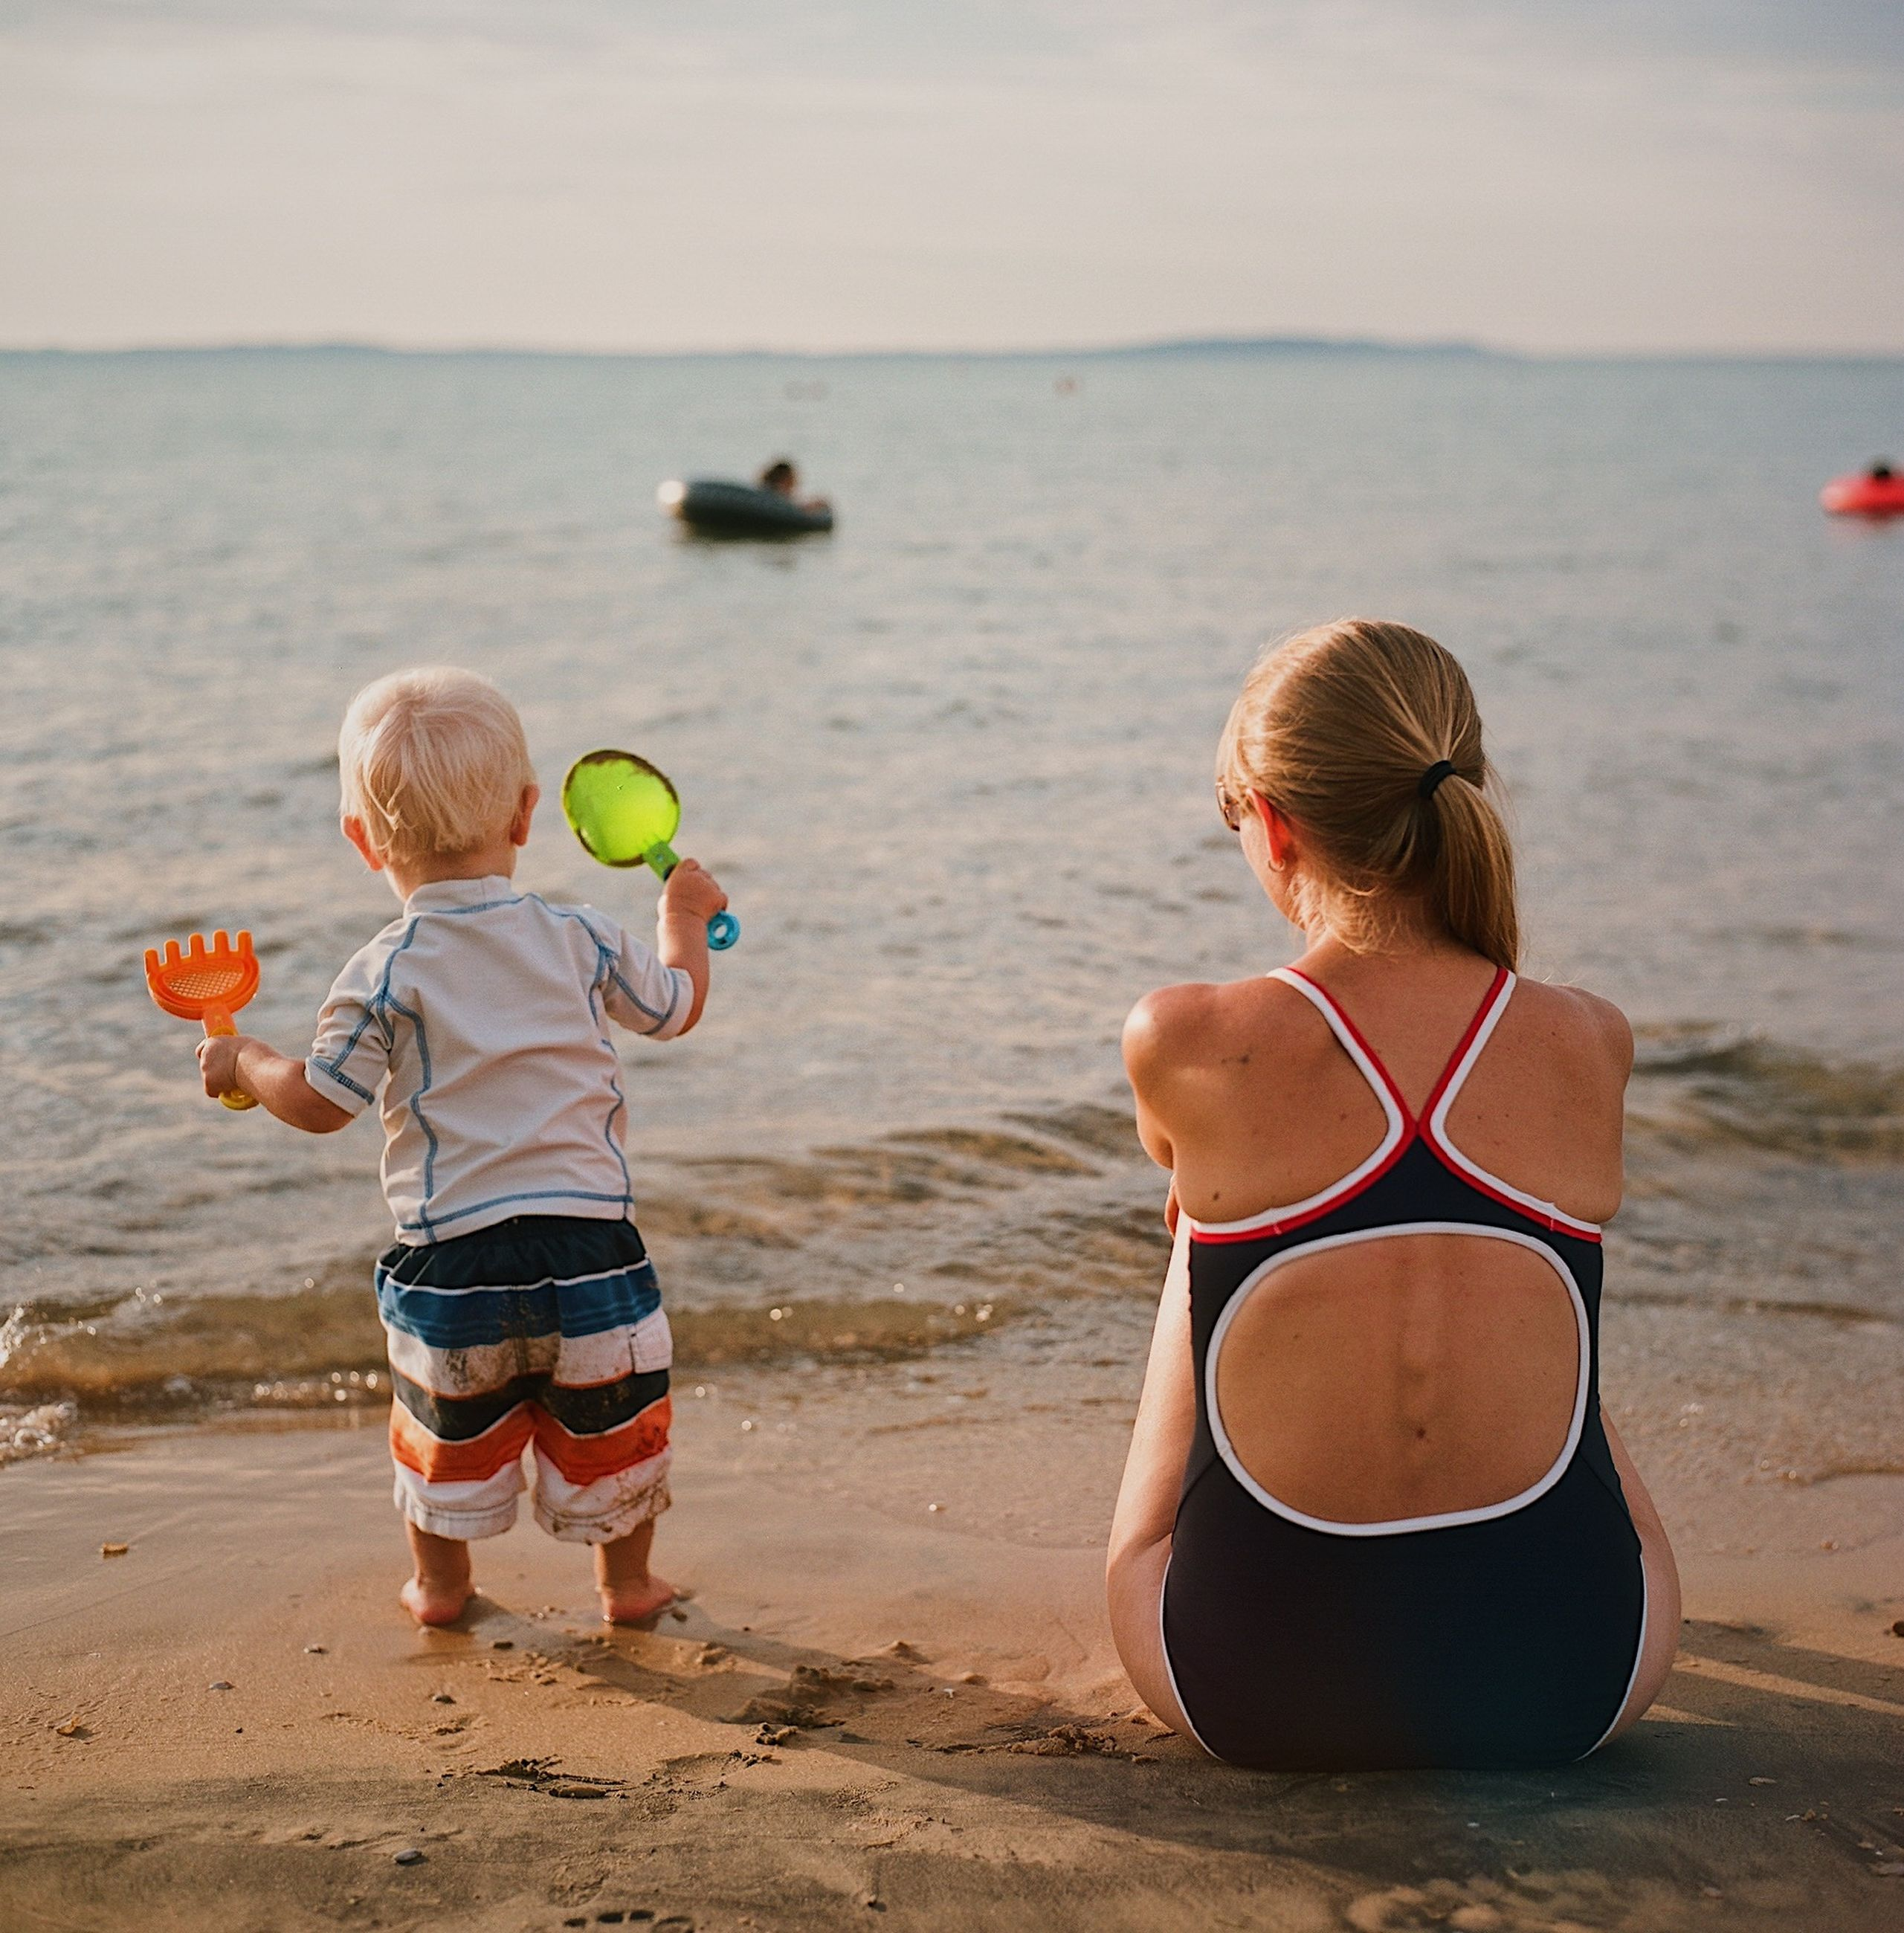 water, sea, beach, land, childhood, child, real people, family, two people, lifestyles, sand, boys, women, rear view, leisure activity, males, togetherness, nature, females, horizon over water, outdoors